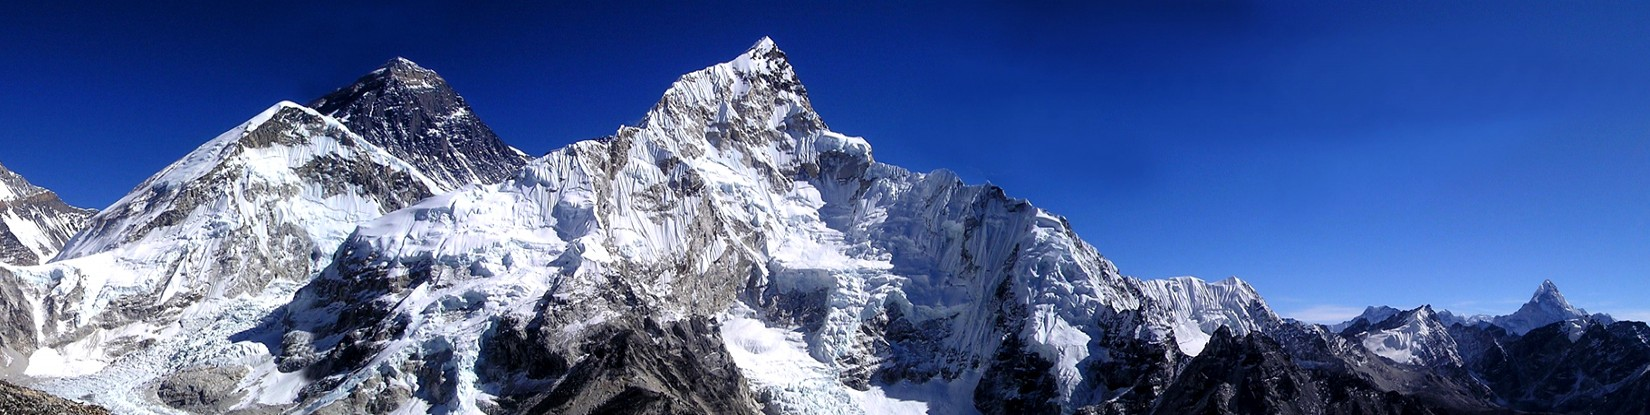 25 Trivia About Everest